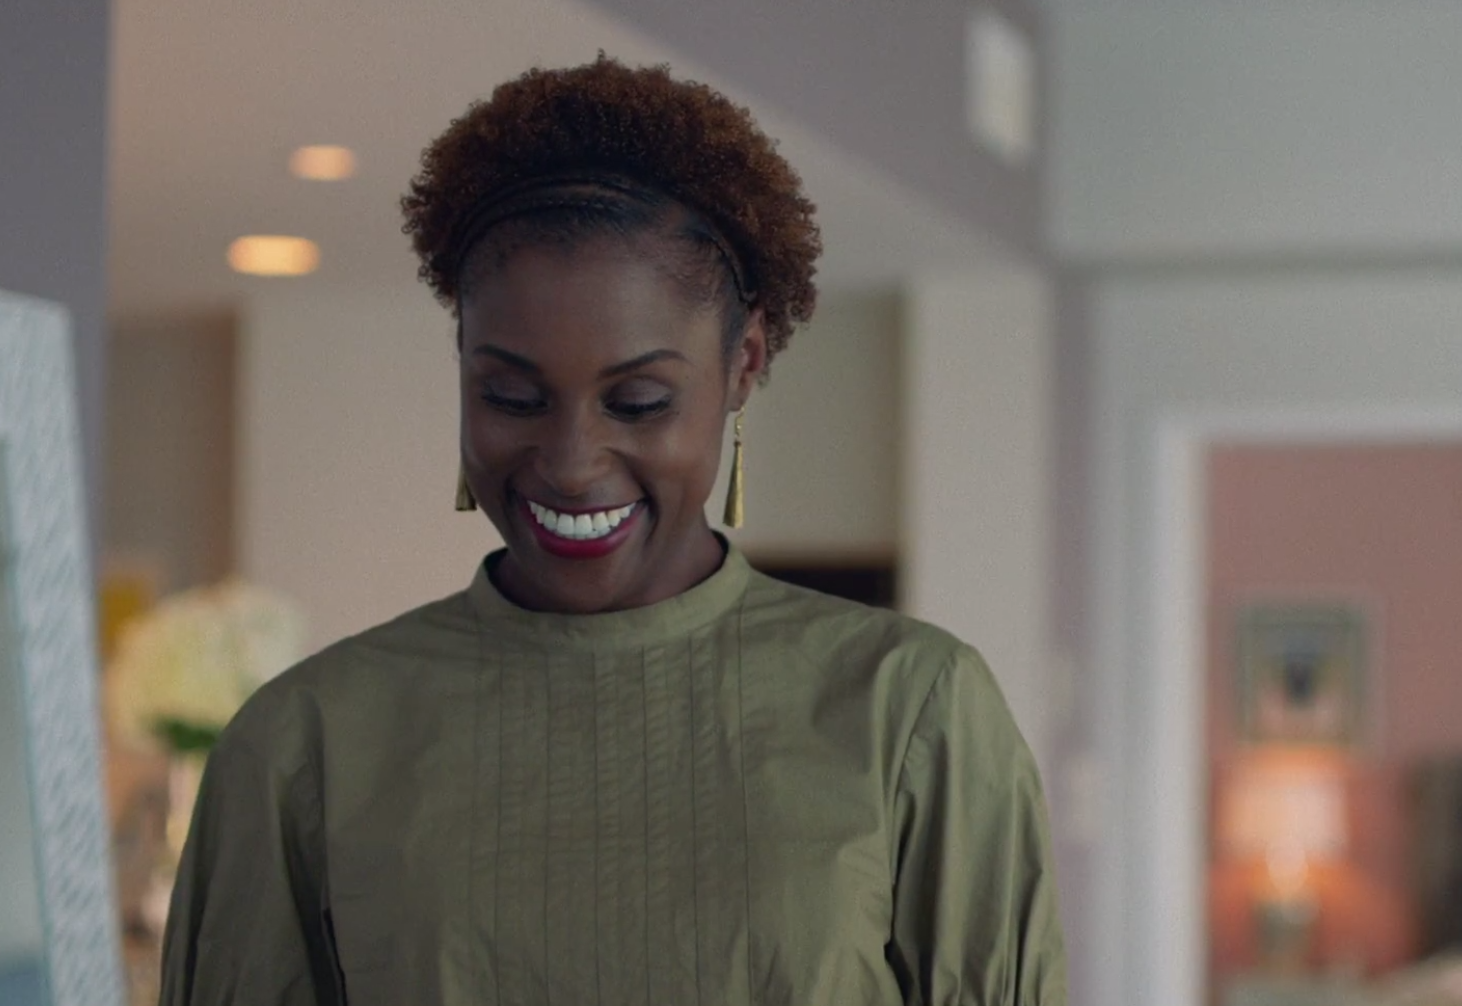 Issa Rae Halo Braid Afro Puff Worn on HBO Insecure Hella Shook